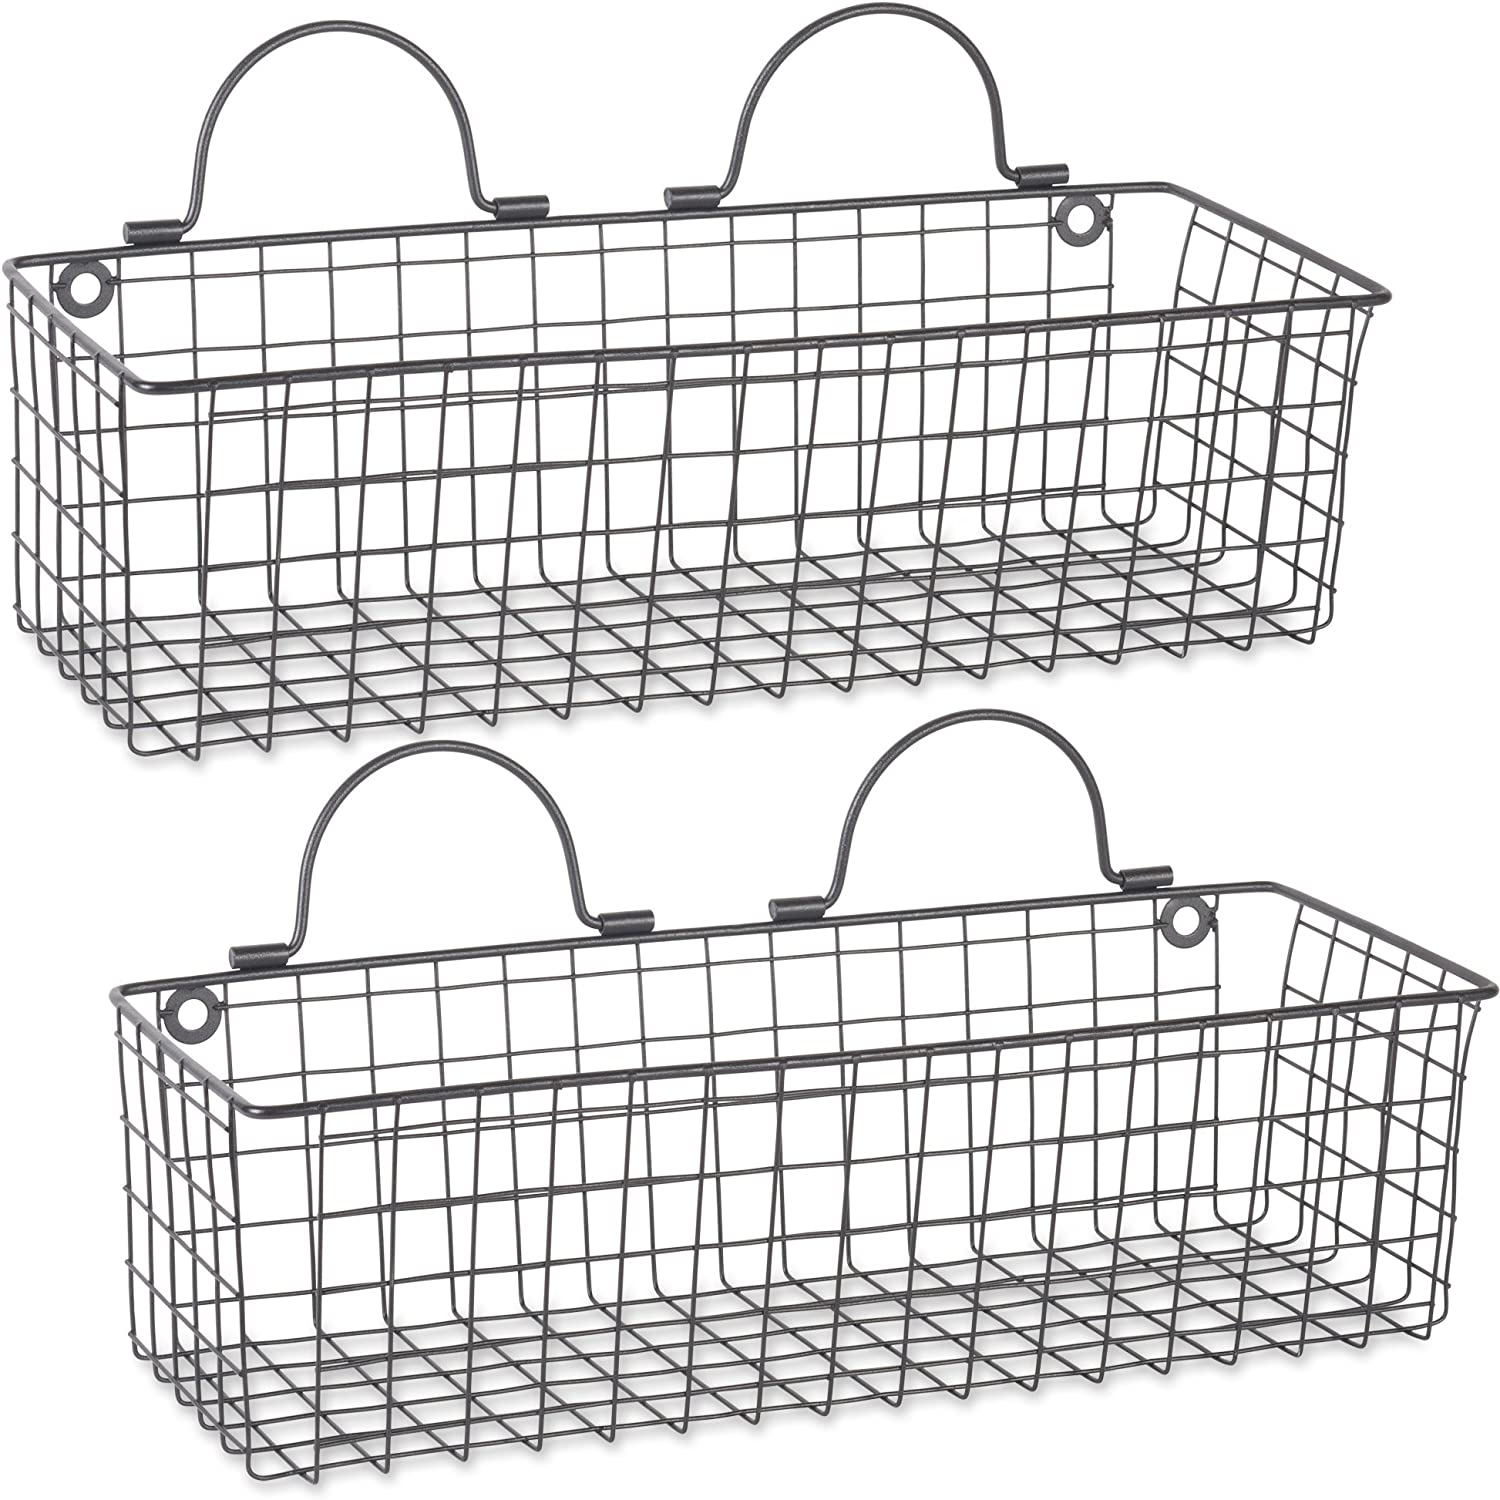 DII Rustic Farmhouse Vintage Hanging Wall Mounted Wire Metal Basket, Set of 2 Medium, Black